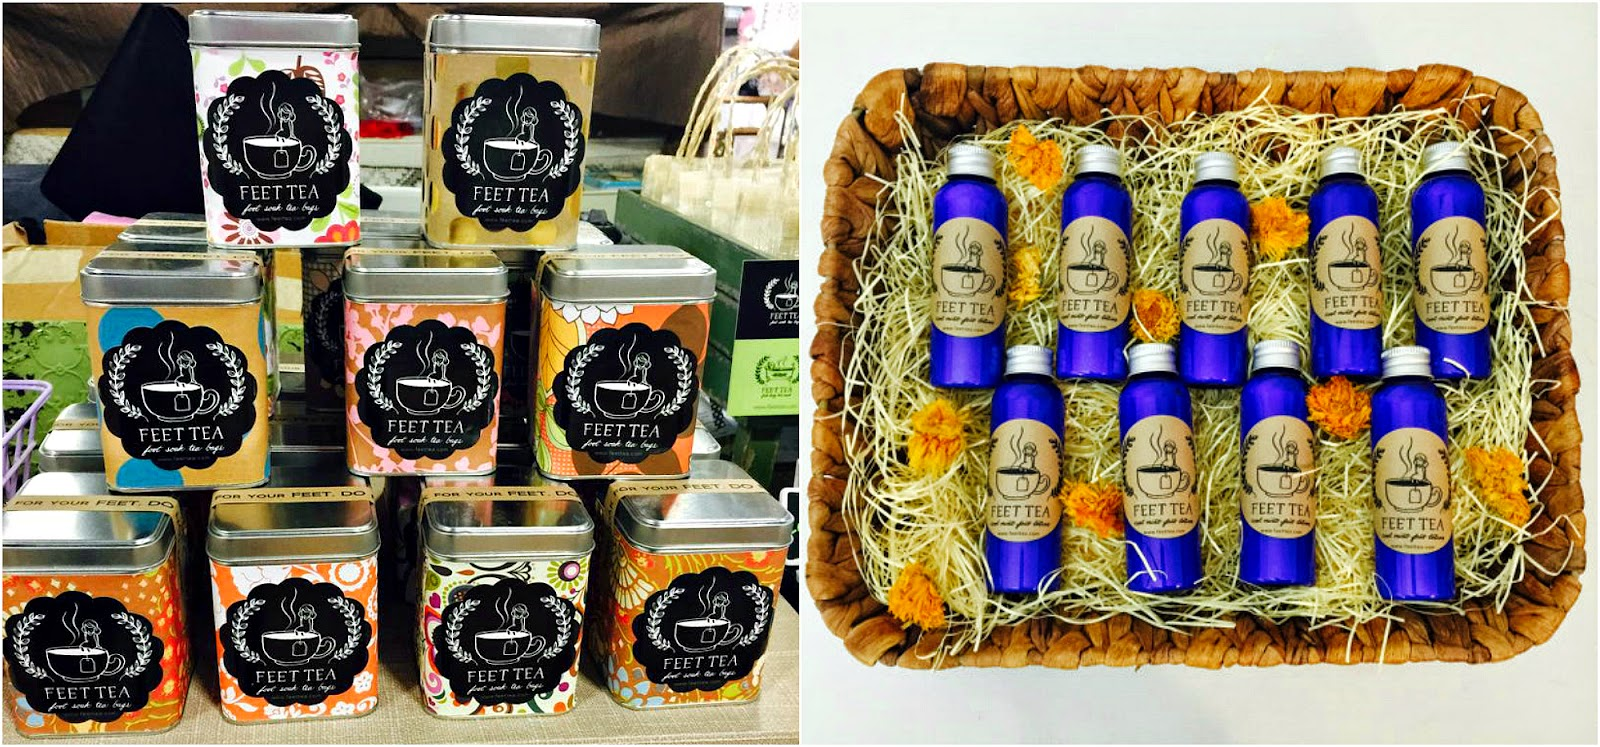 Feet Tea feature & GIVEAWAY on Shop Small Saturday at Diane's Vintage Zest!  #beauty #relax #spa #gift